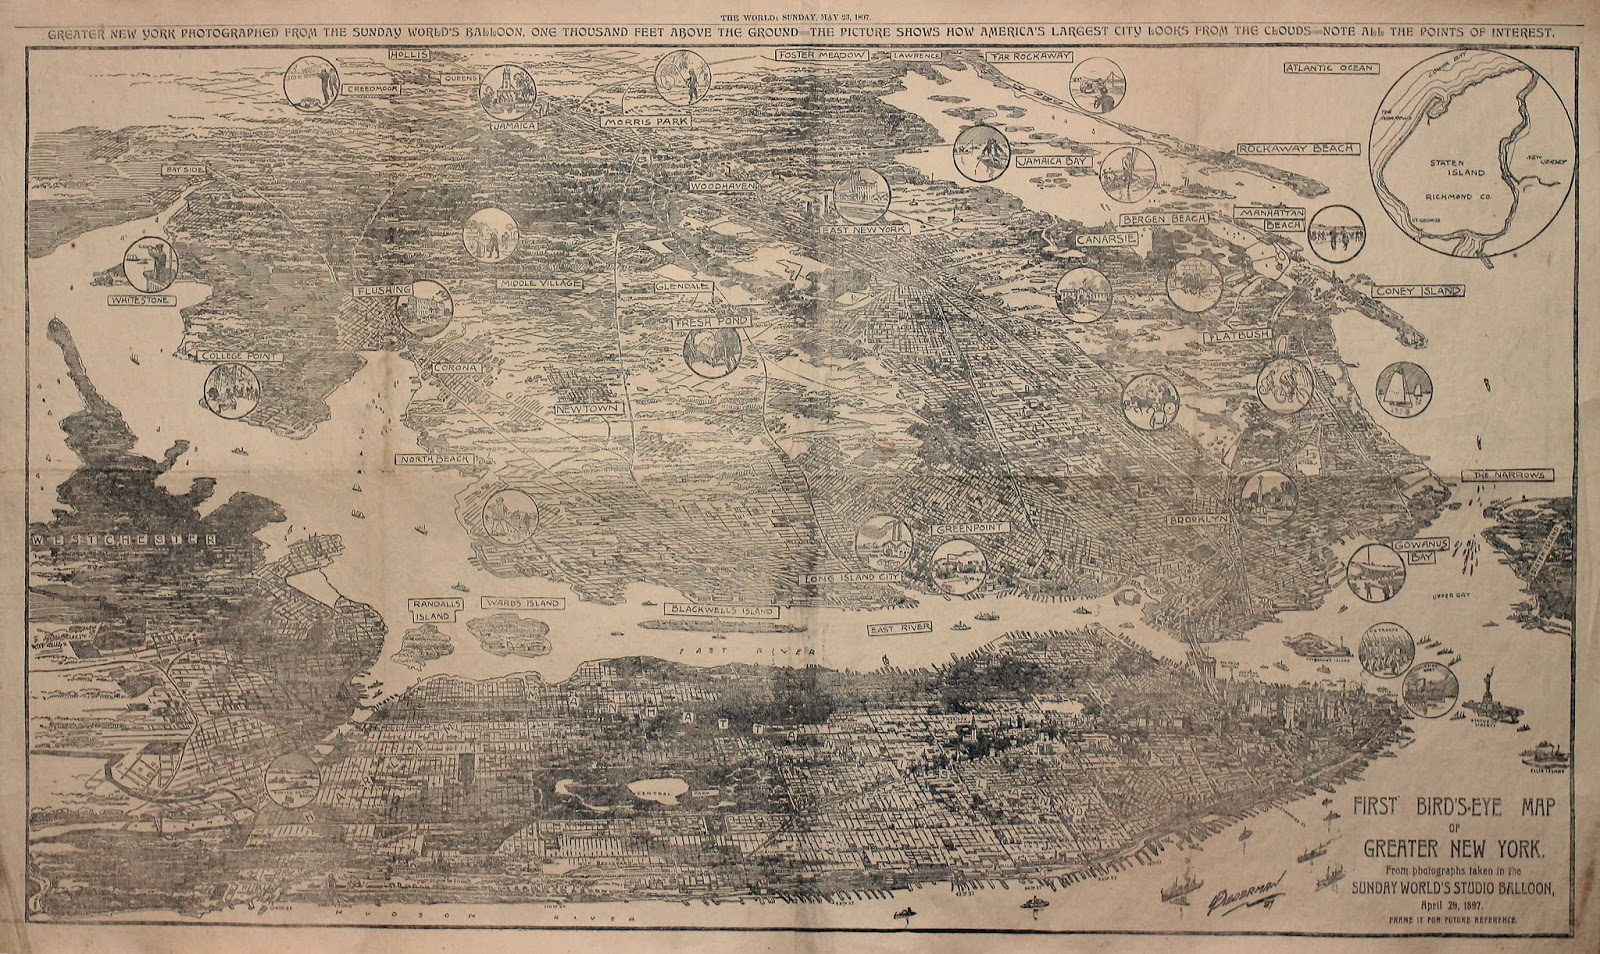 Bird's-Eye Map of Greater New York (1897)